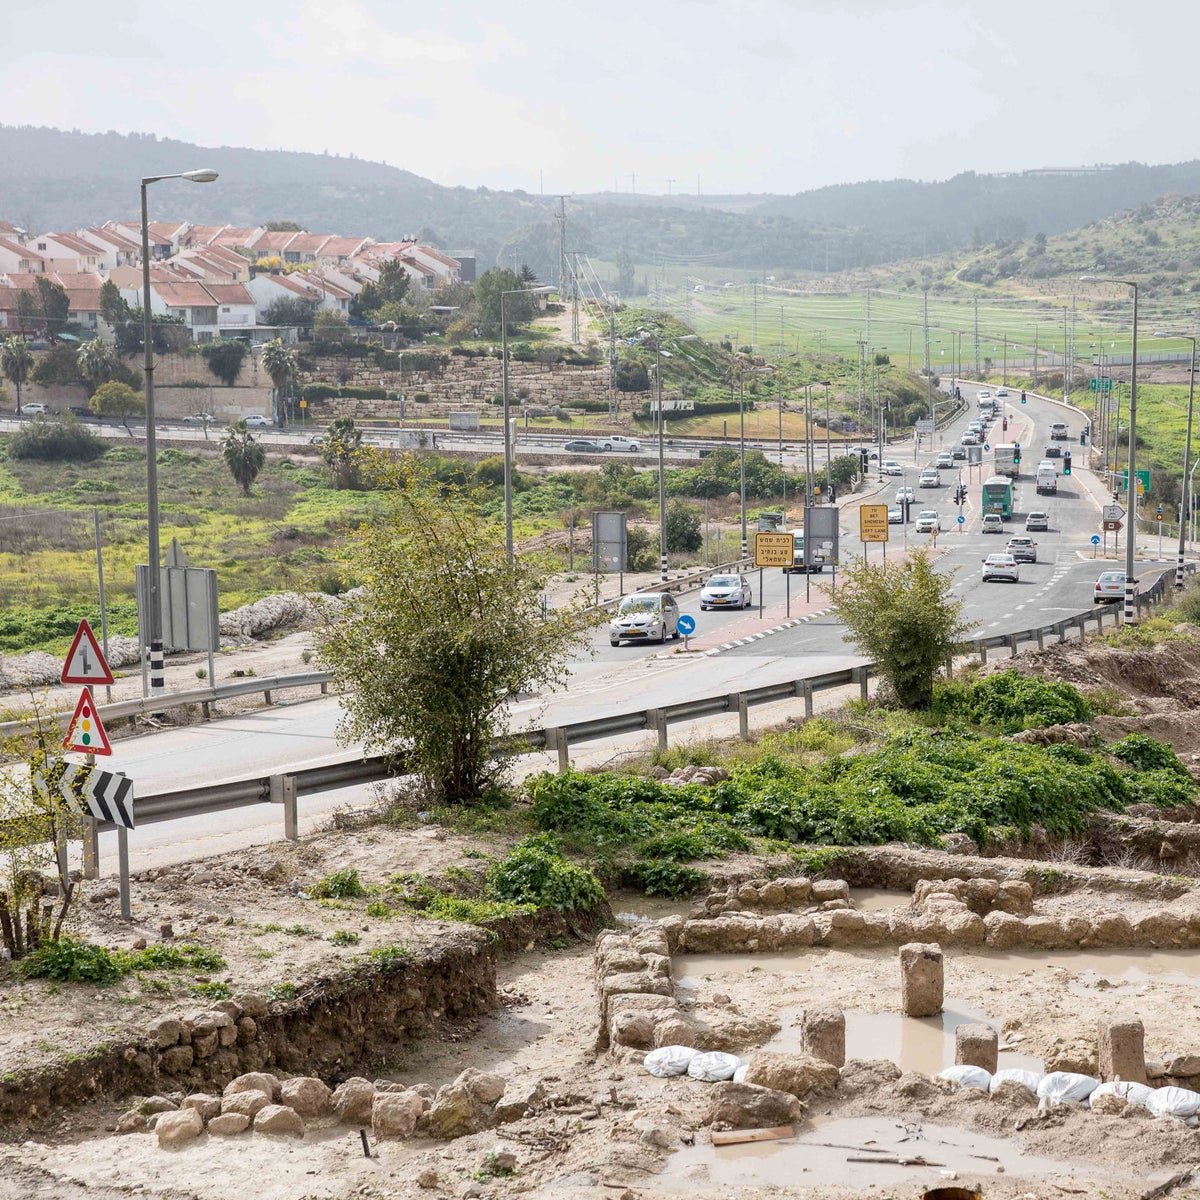 Route 38 in the Tel Beit Shemesh area.